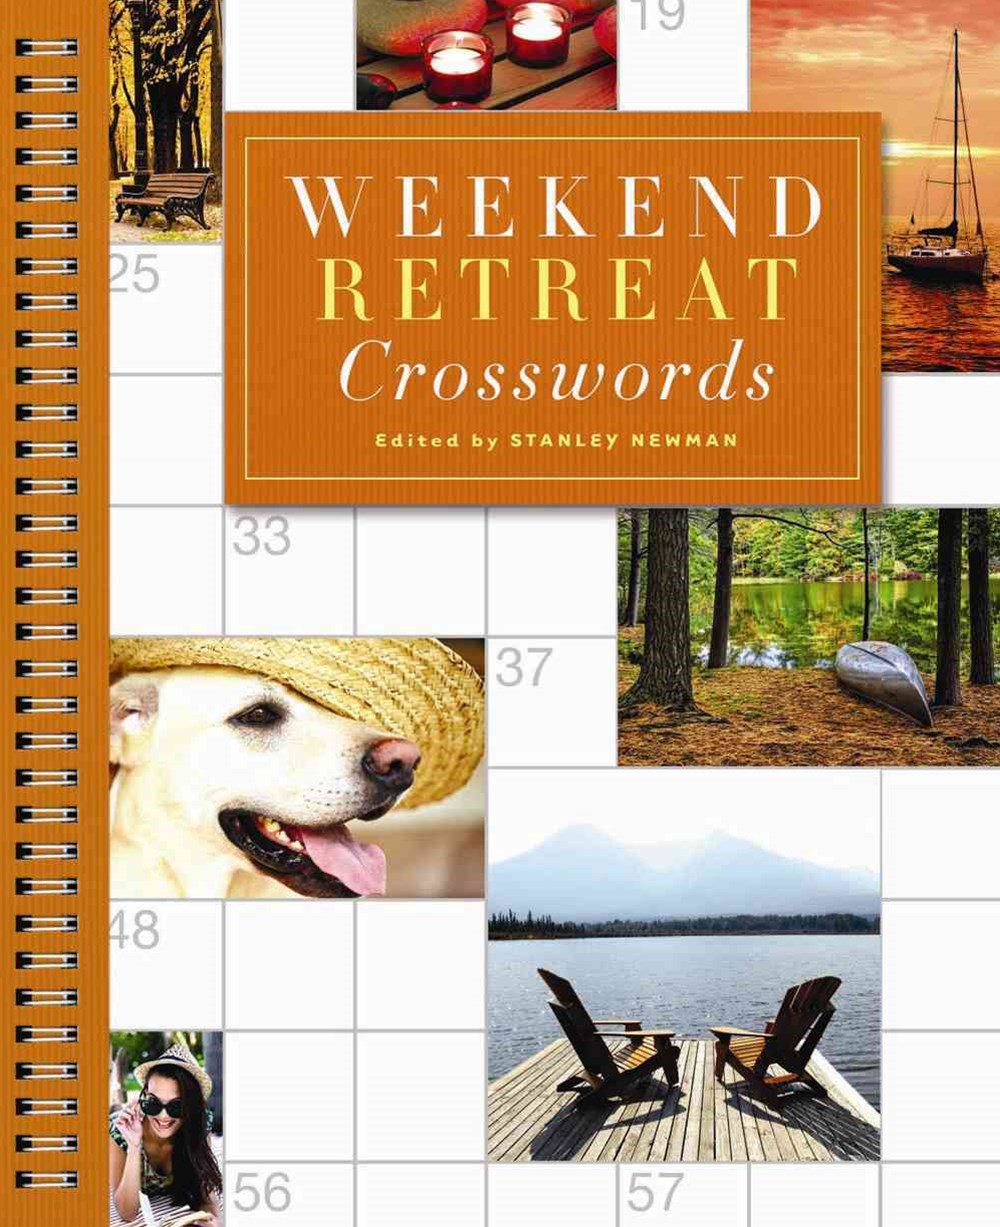 Weekend Retreat Crosswords